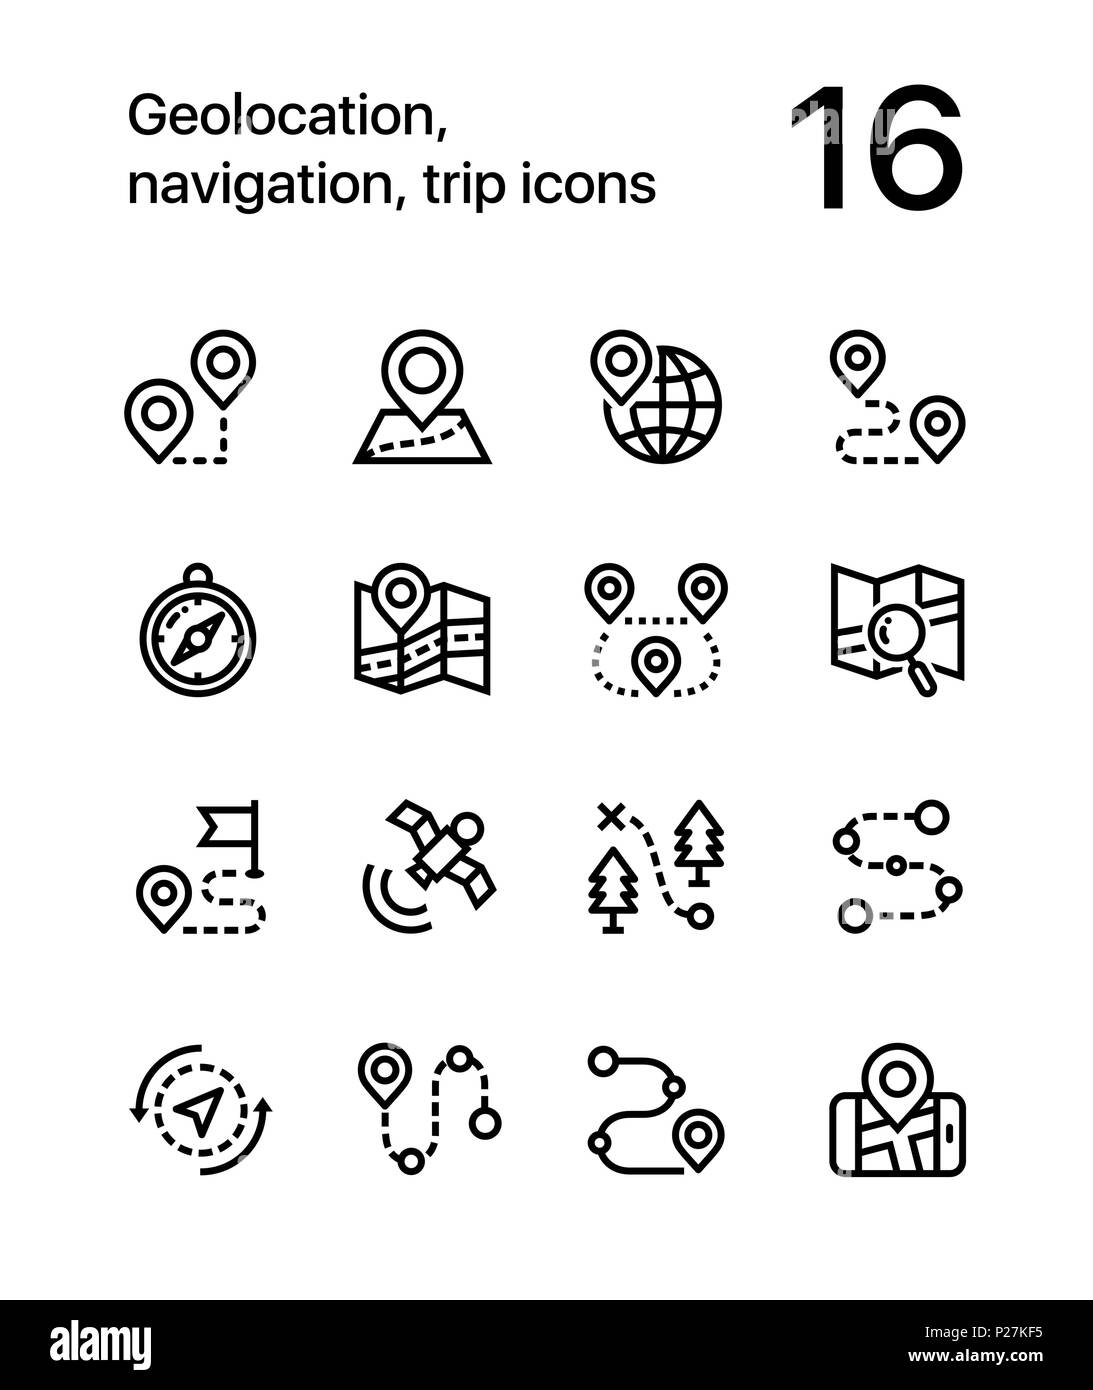 Geolocation, navigation, trip icons for web and mobile design pack 1 - Stock Image